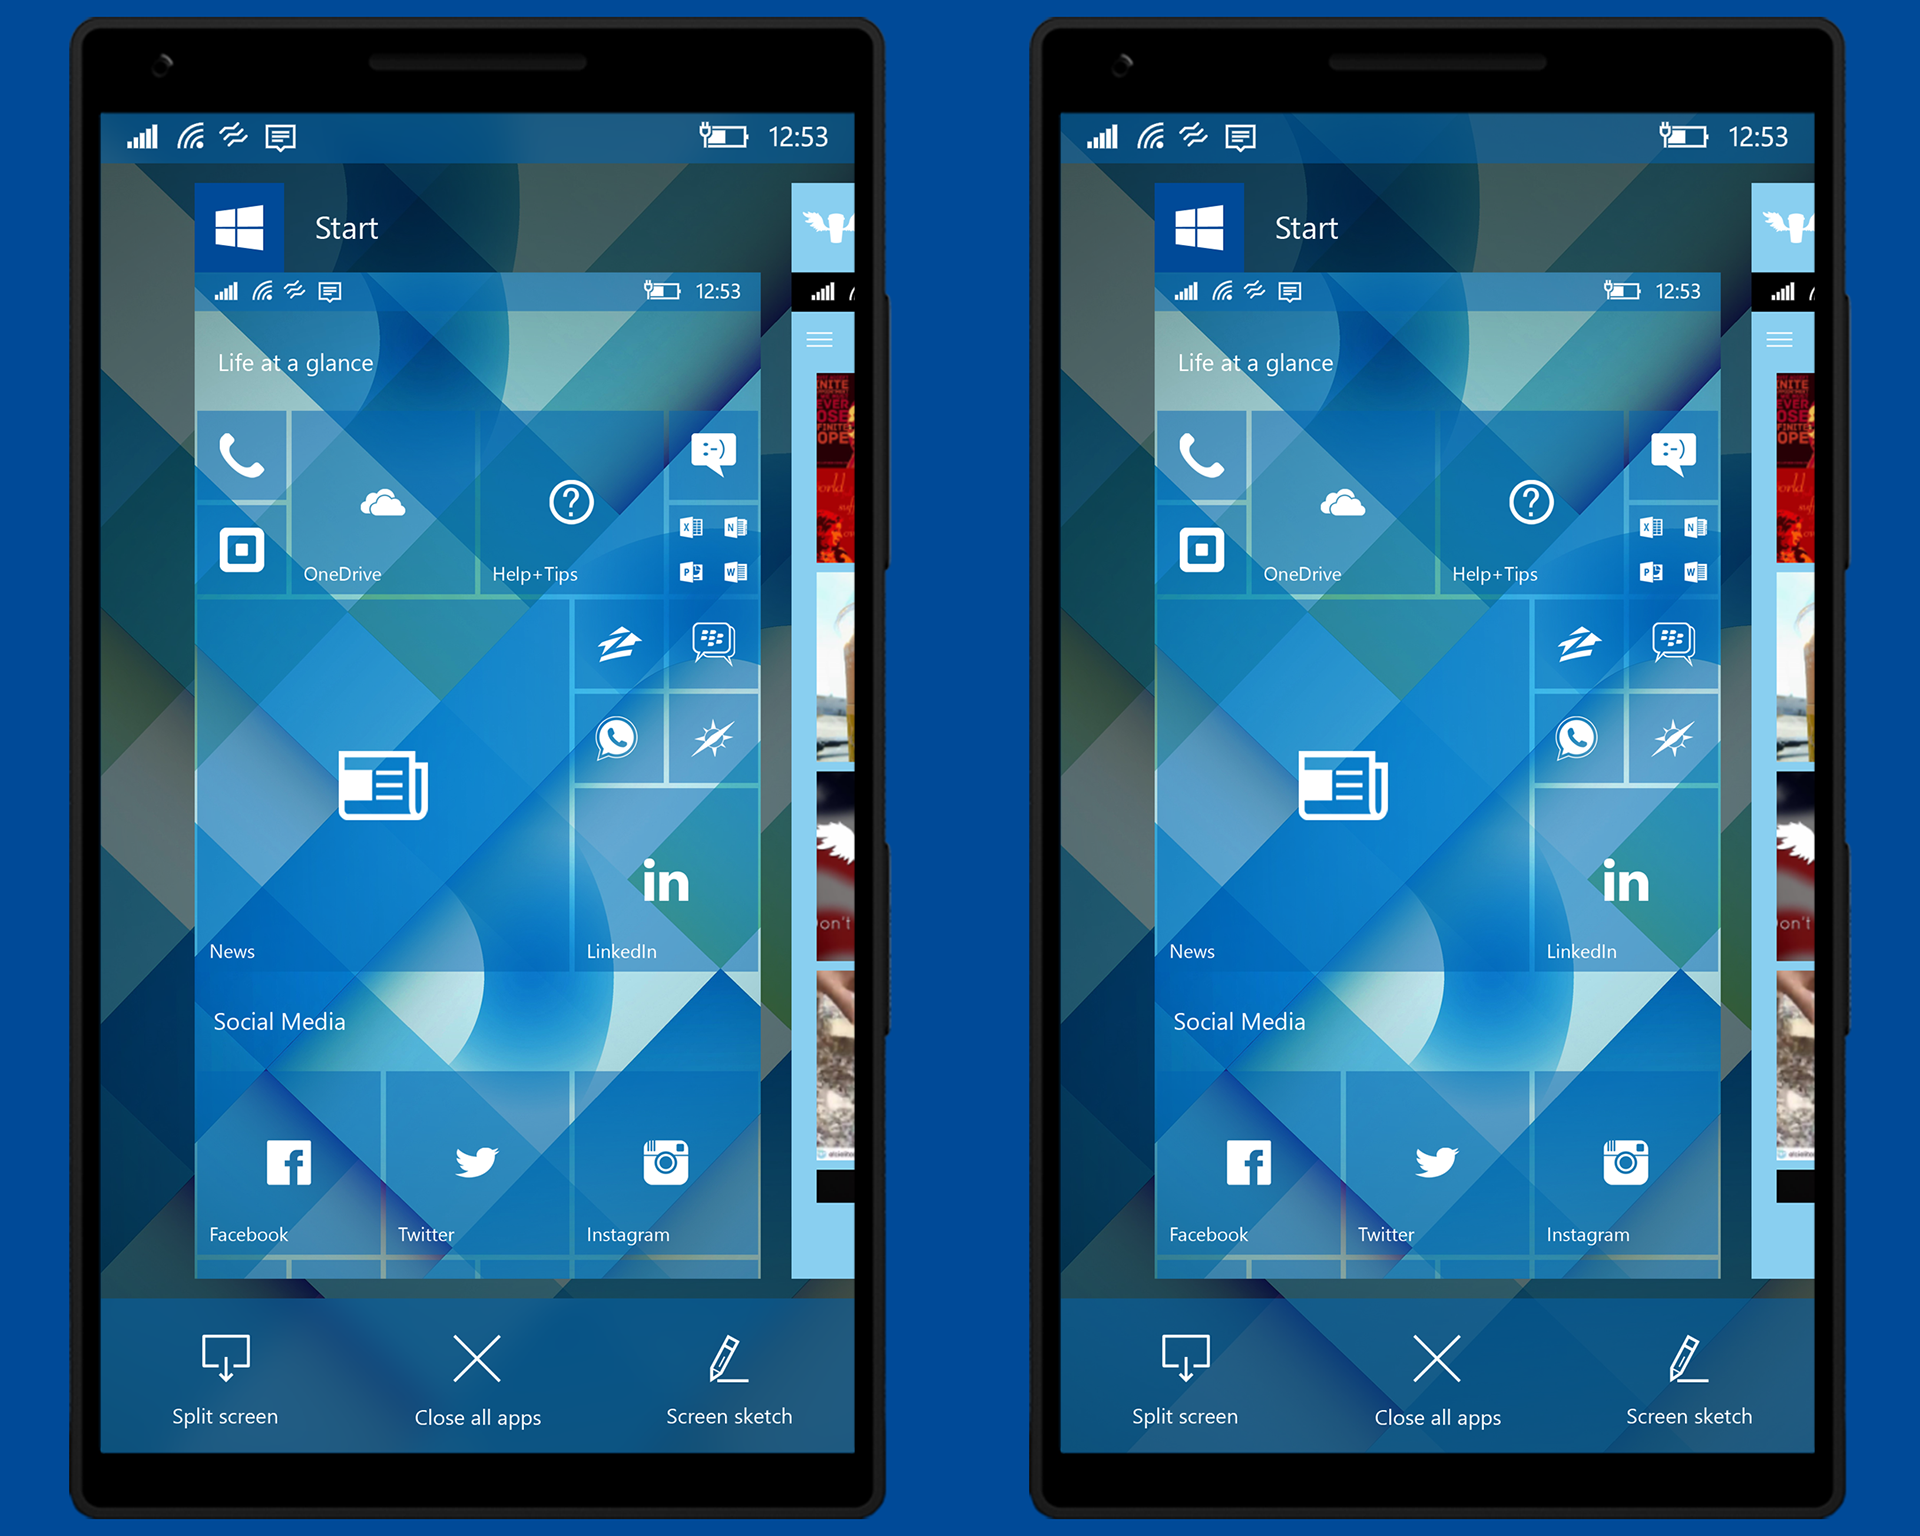 Windows 10 Mobile Gets a Facelift and New Features in User